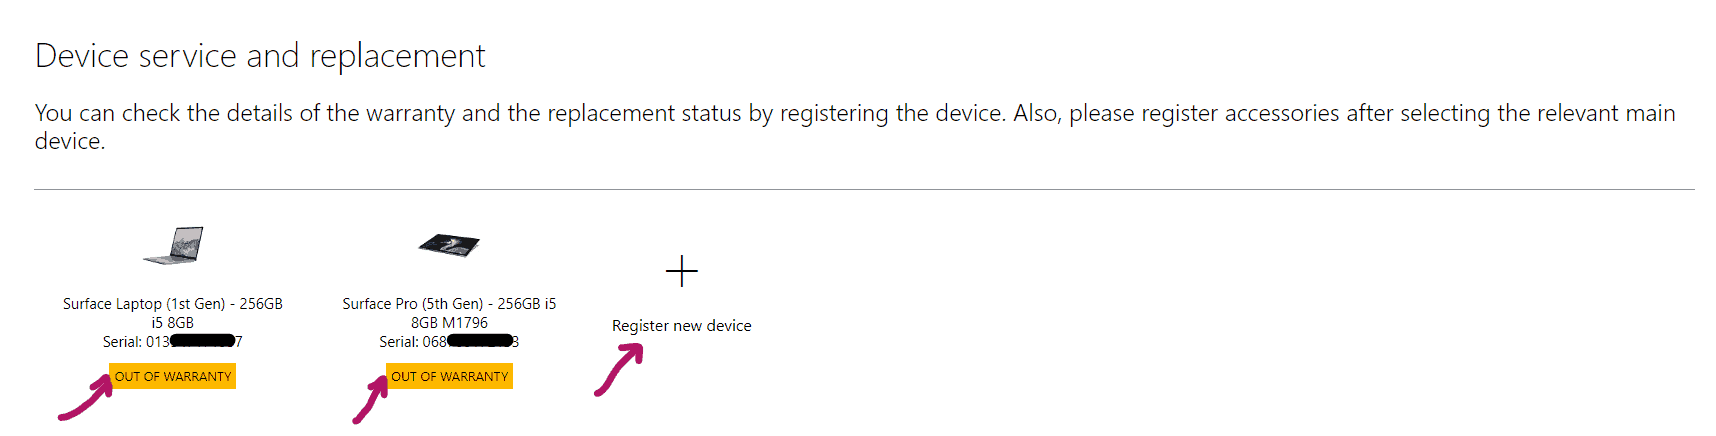 Surface Devices Warranty Status